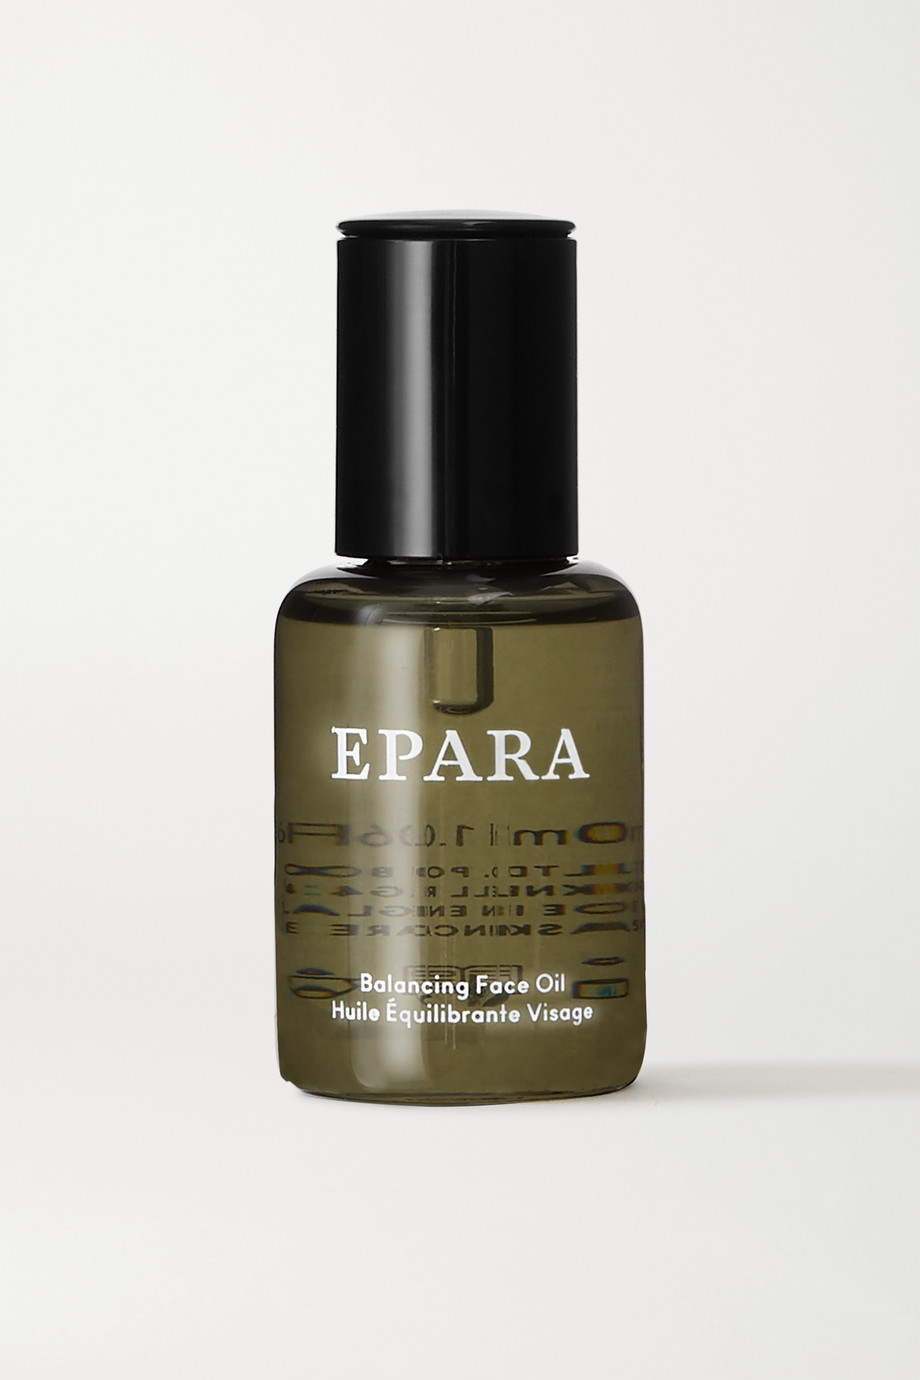 Epara Balancing Face Oil, 30ml